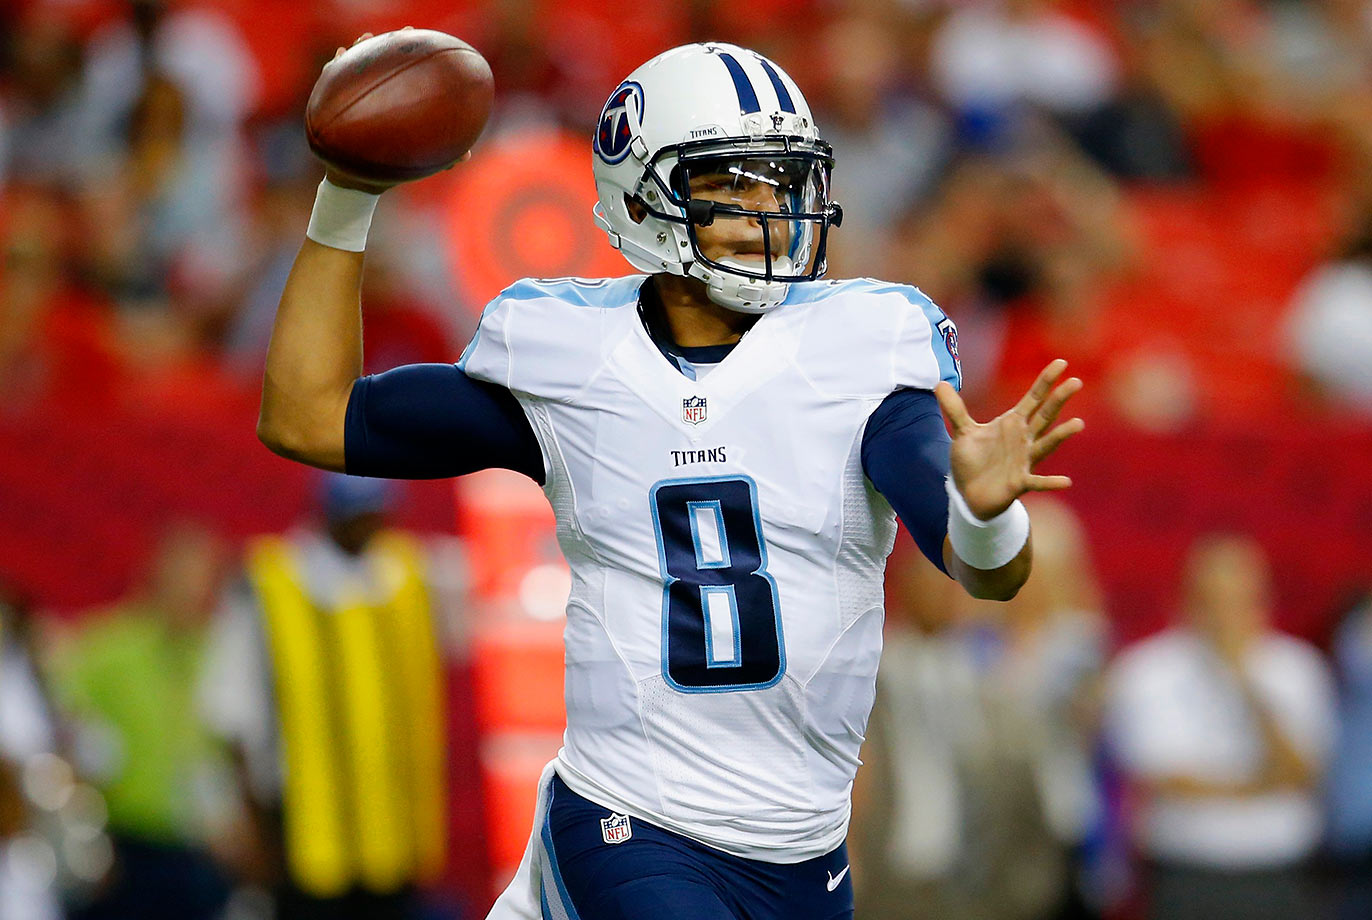 Mariota will start from Day One in Tennessee, and while there will be plenty of growing pains, he has enough upside to warrant attention in fantasy leagues of all stripes. He is especially intriguing in two-QB leagues.